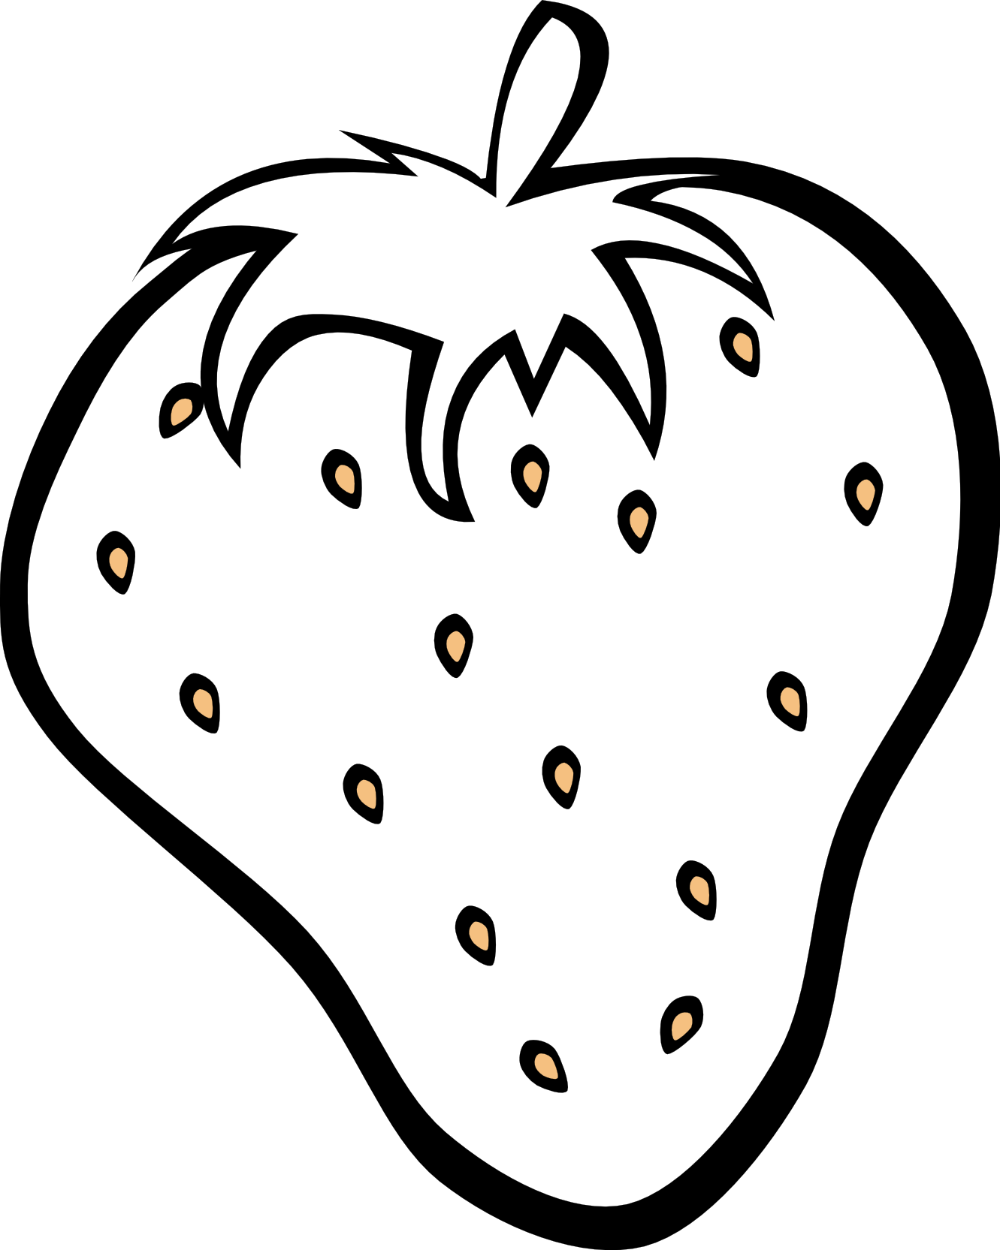 Strawberry Clipart Black And White Clip Art Library Fruit Coloring Pages Fruits Drawing Apple Coloring Pages